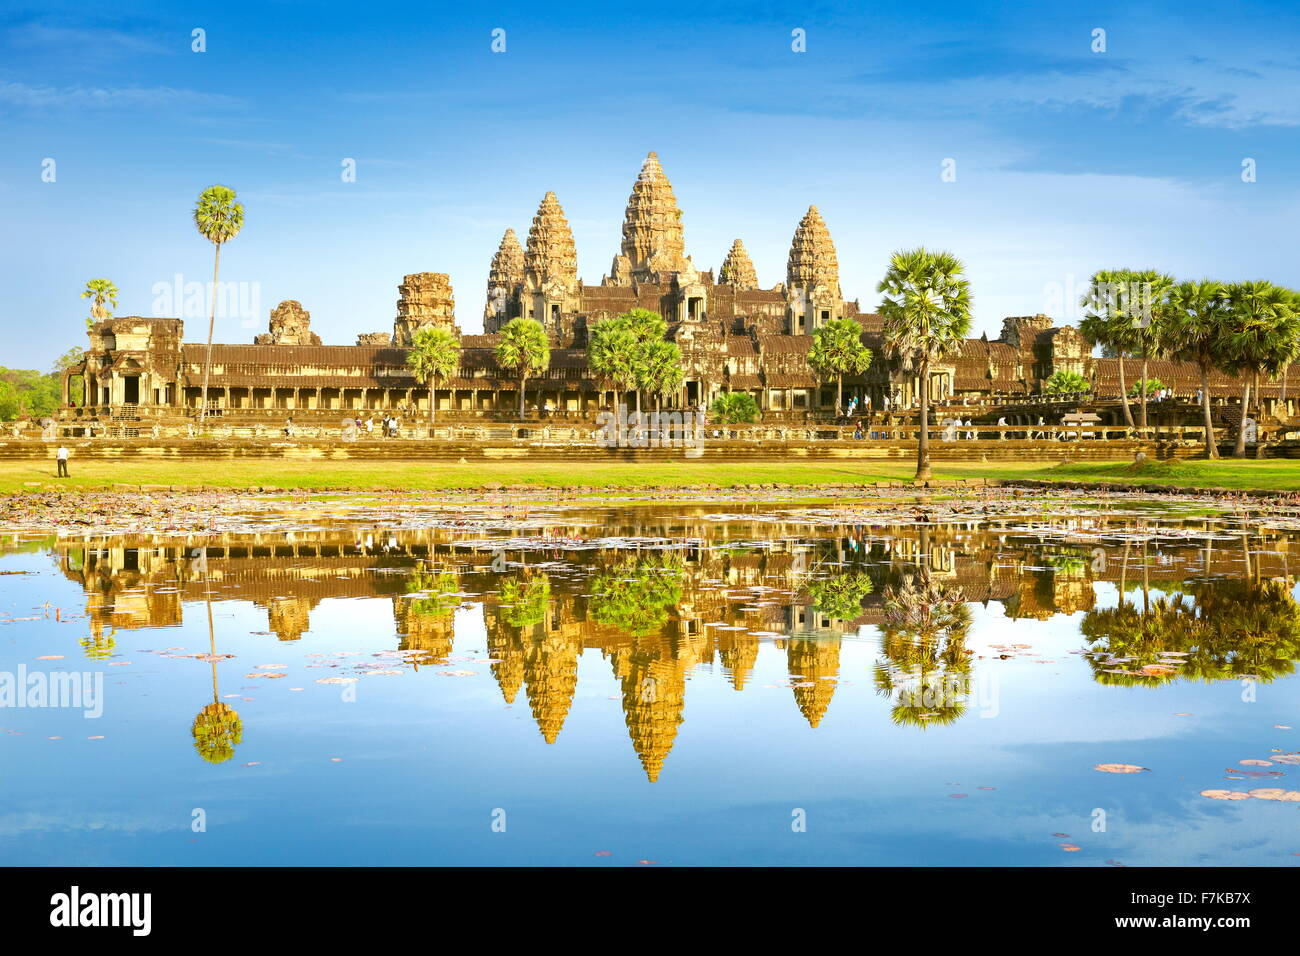 Angkor Wat Temple, Cambodia, Asia (UNESCO) - Stock Image